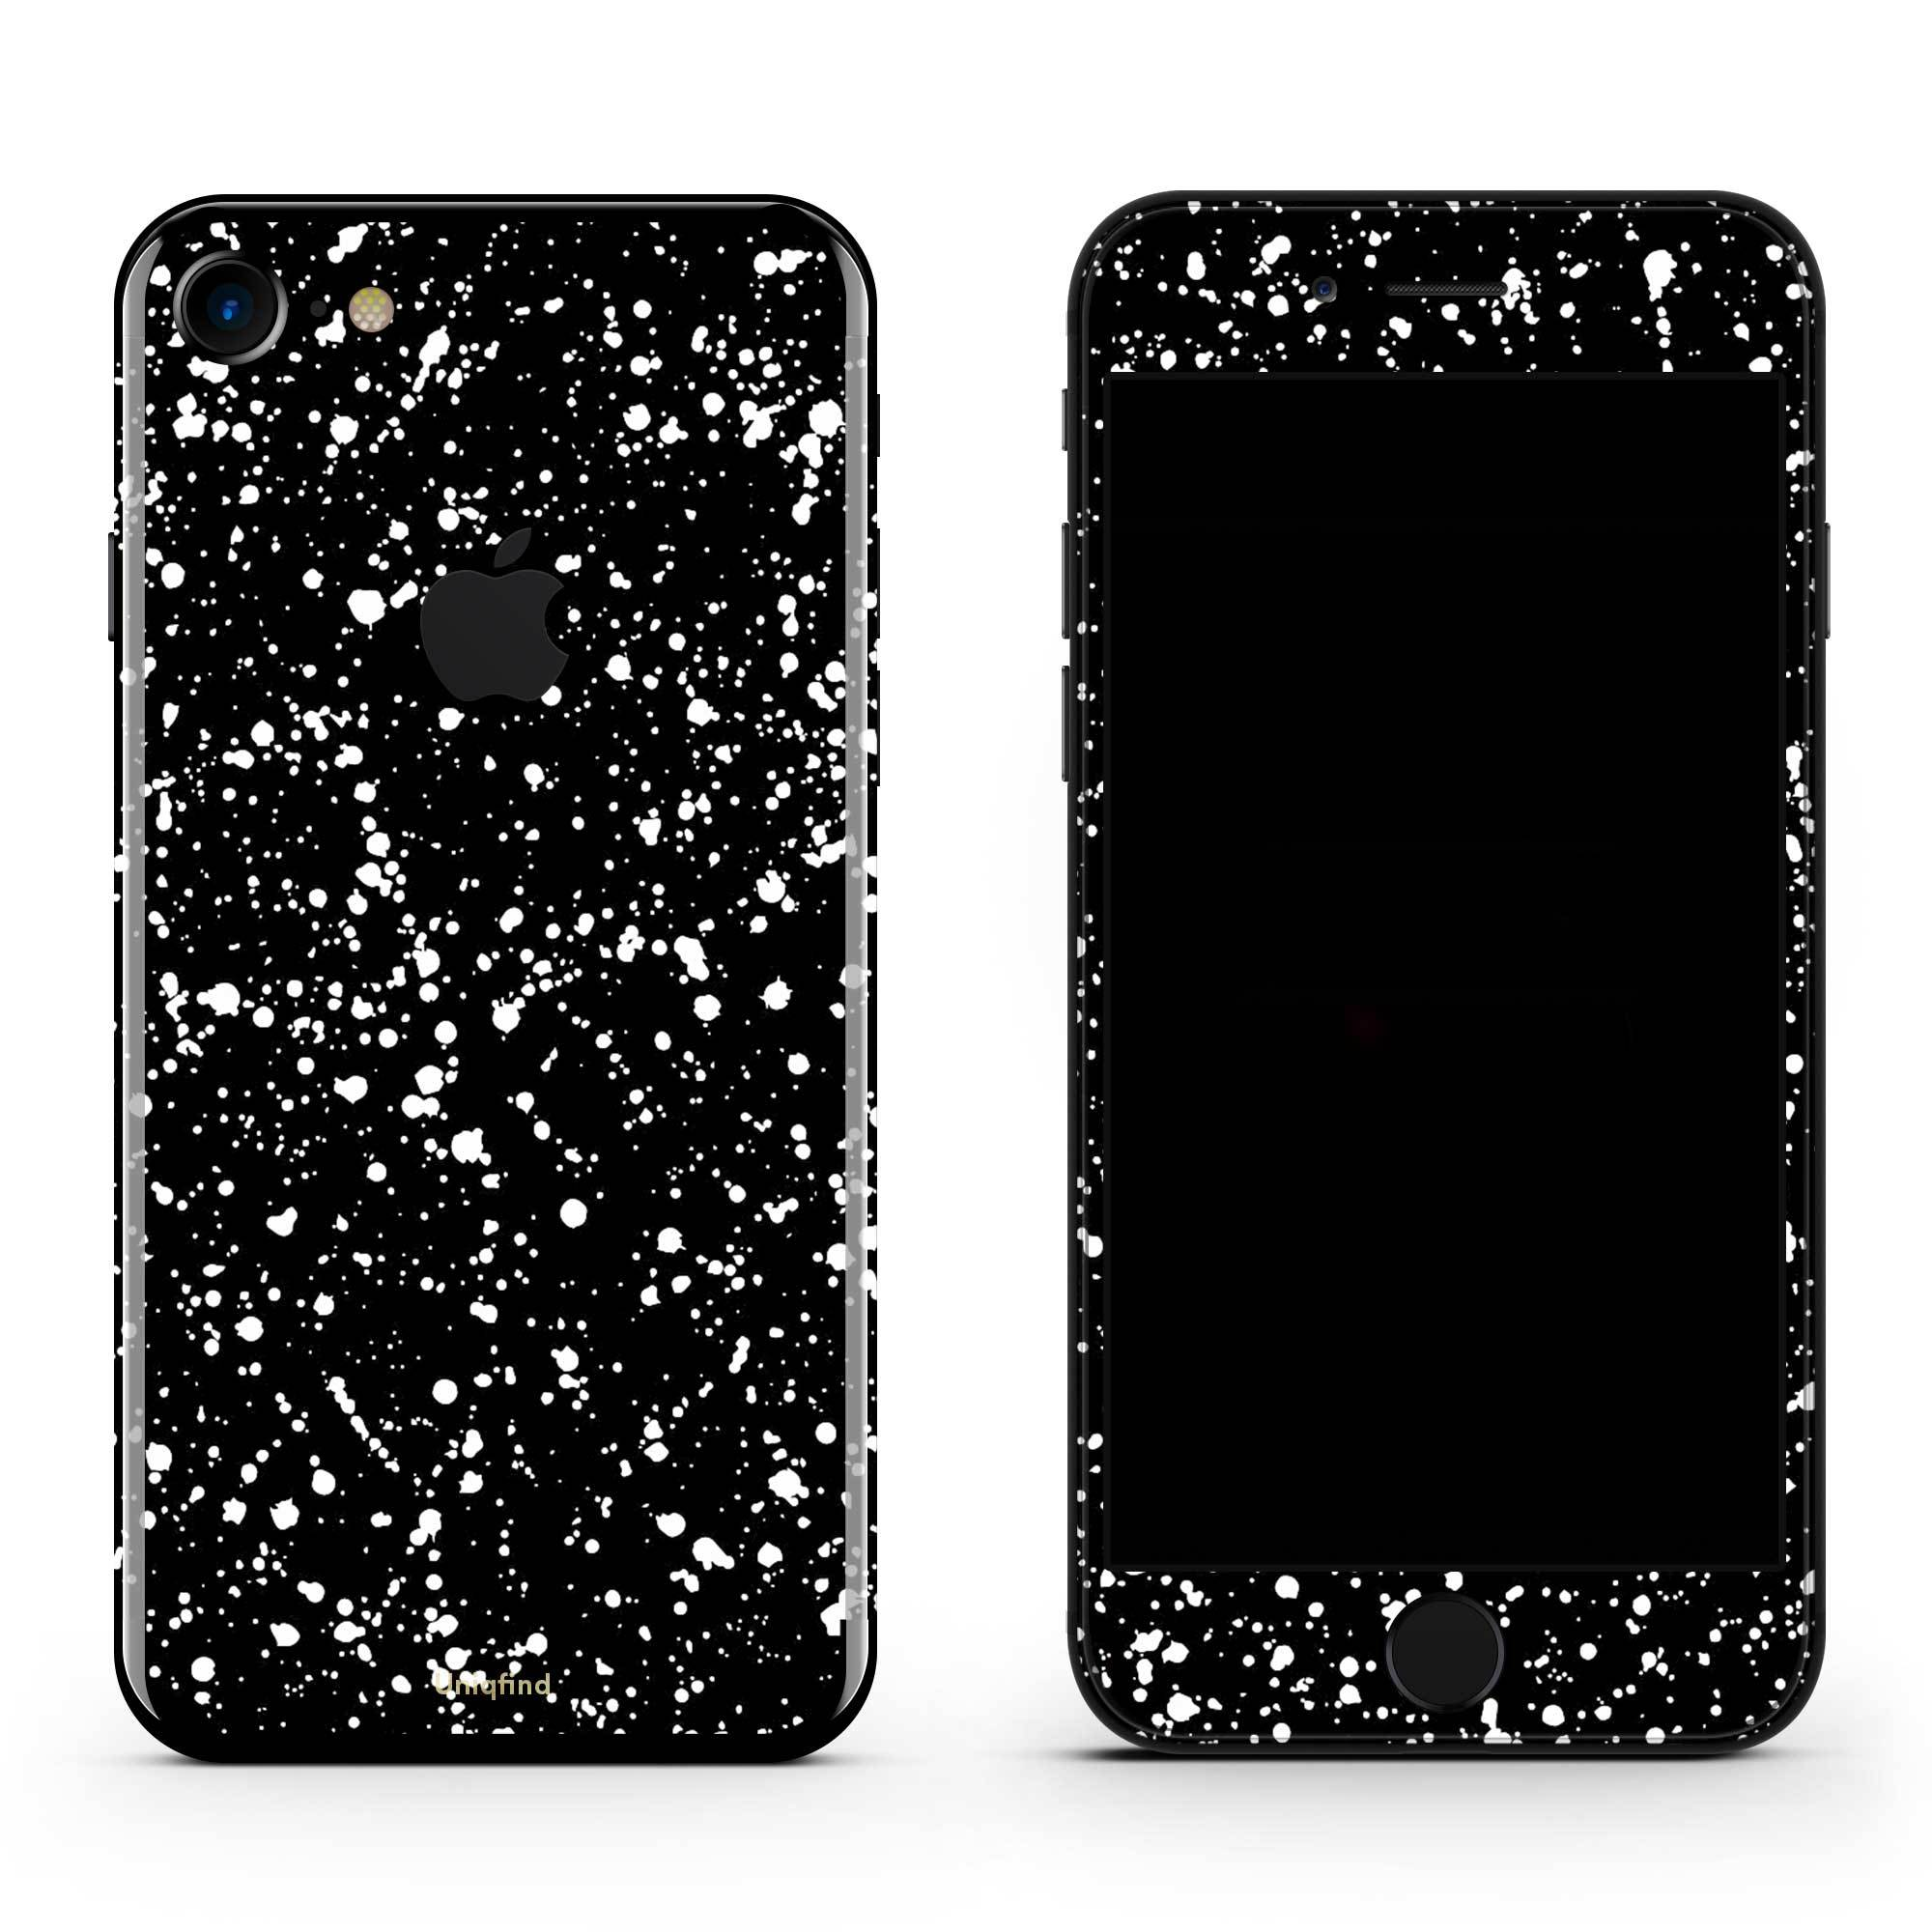 Speckle iPhone 5 Skin